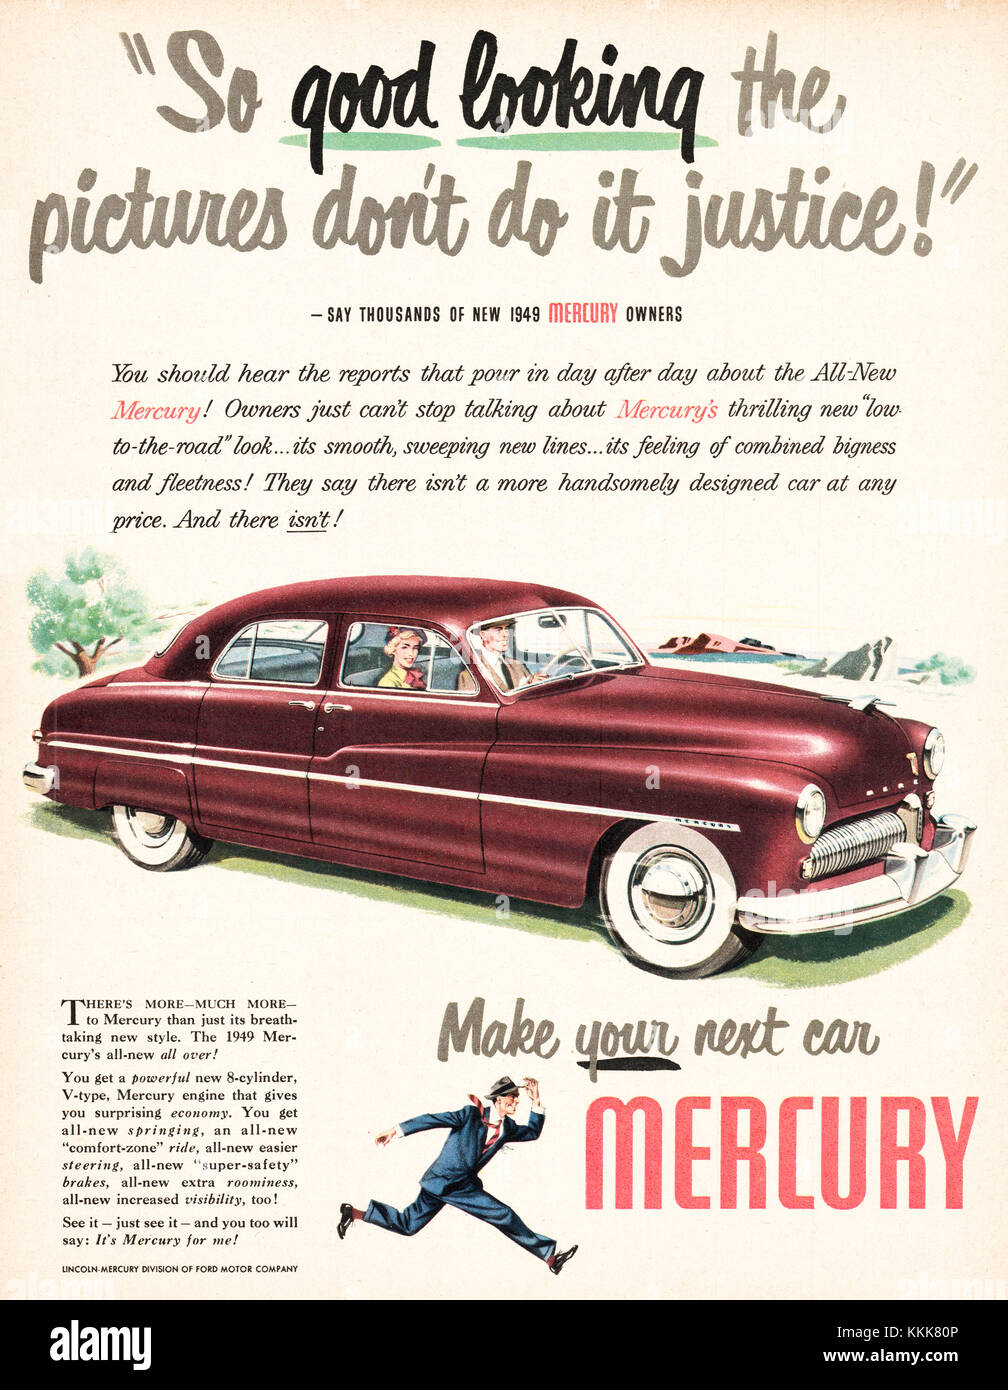 1948 U.S. Magazine Mercury Car Advert Stock Photo: 166995158 - Alamy